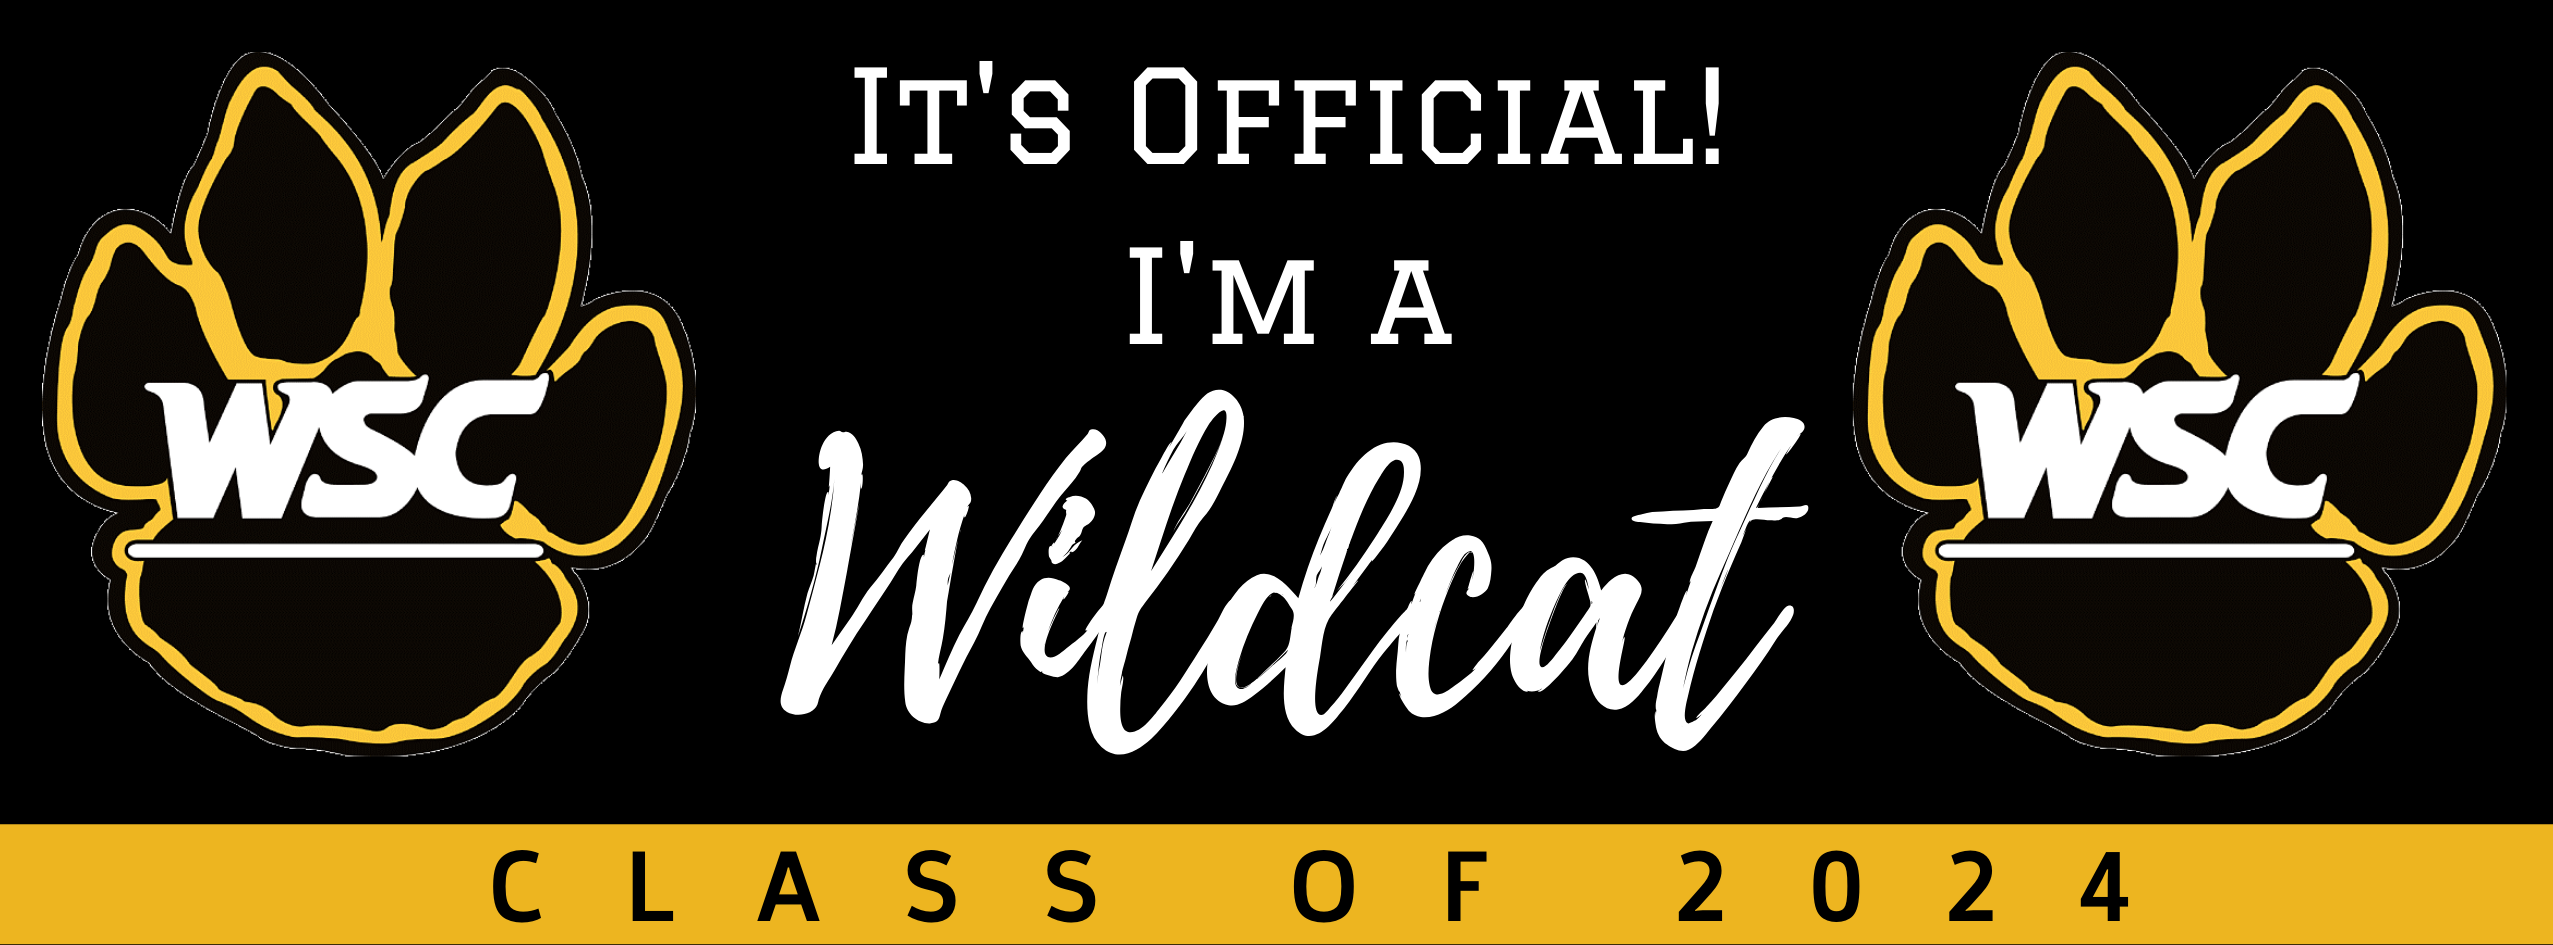 It's official! I'm a Wildcat!